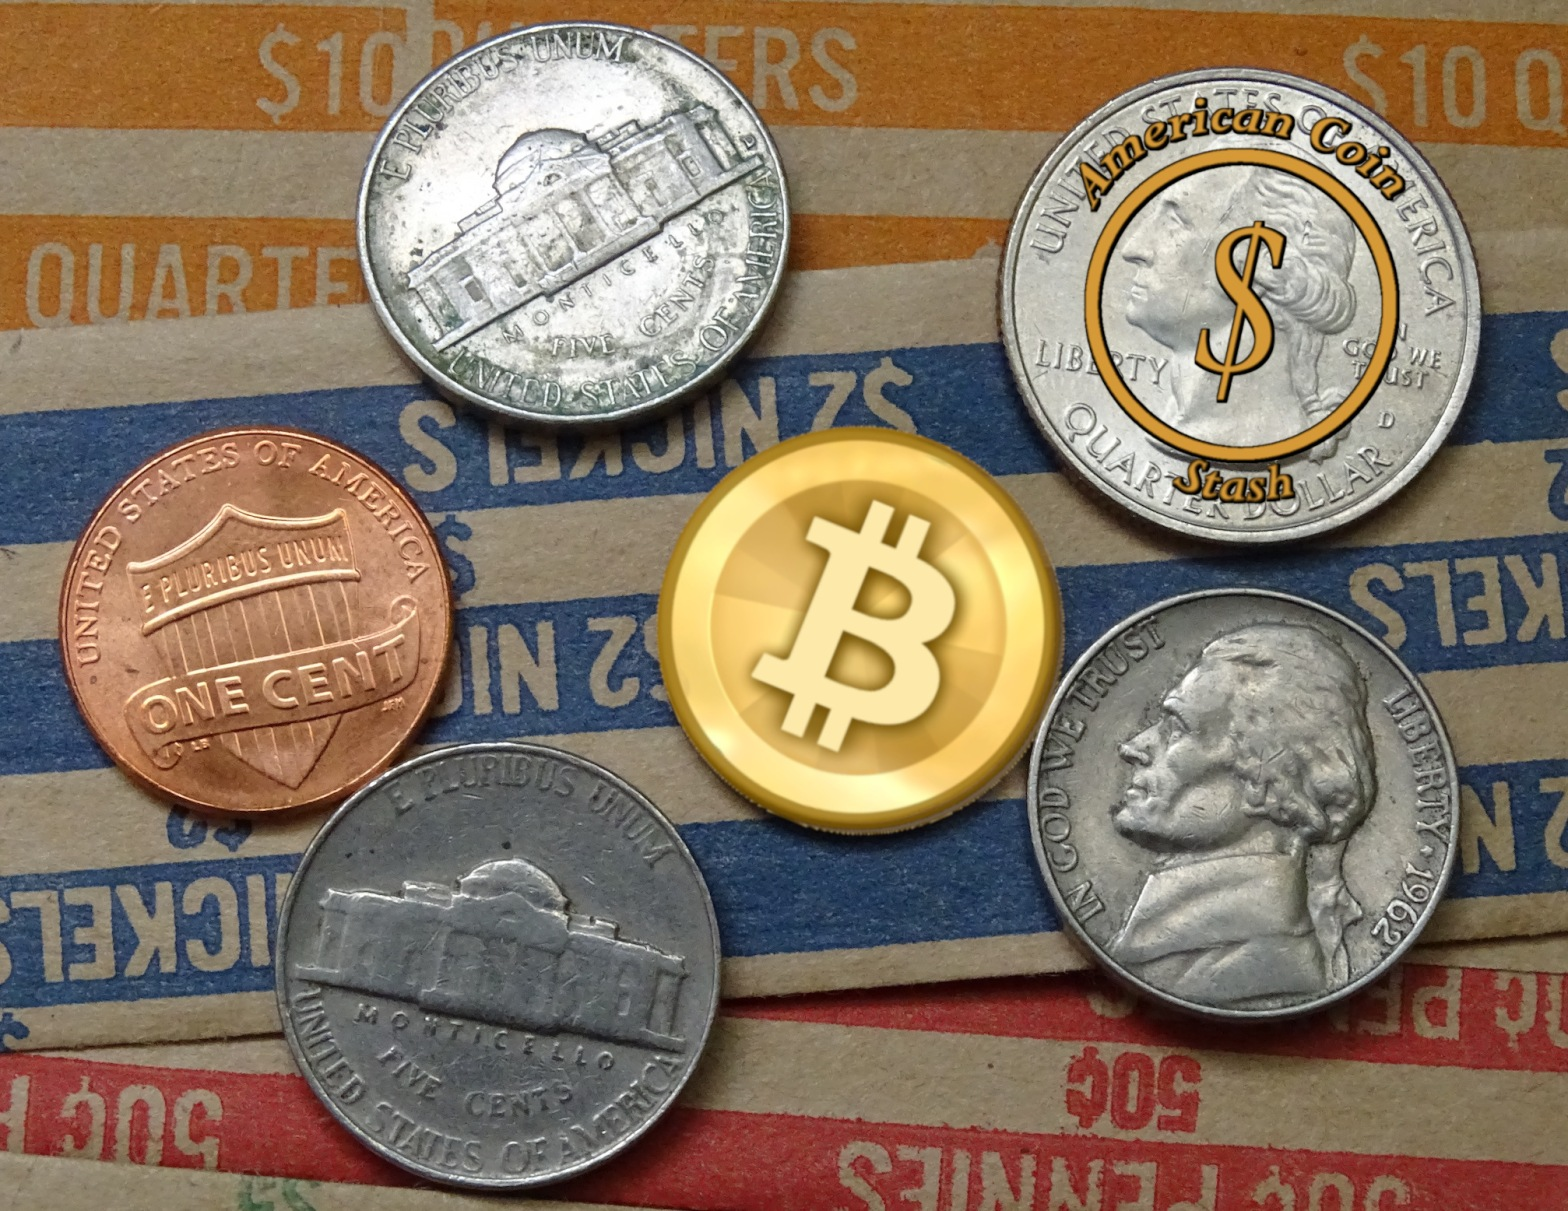 Bitcoin BTC with Real US coins on coin wrappers